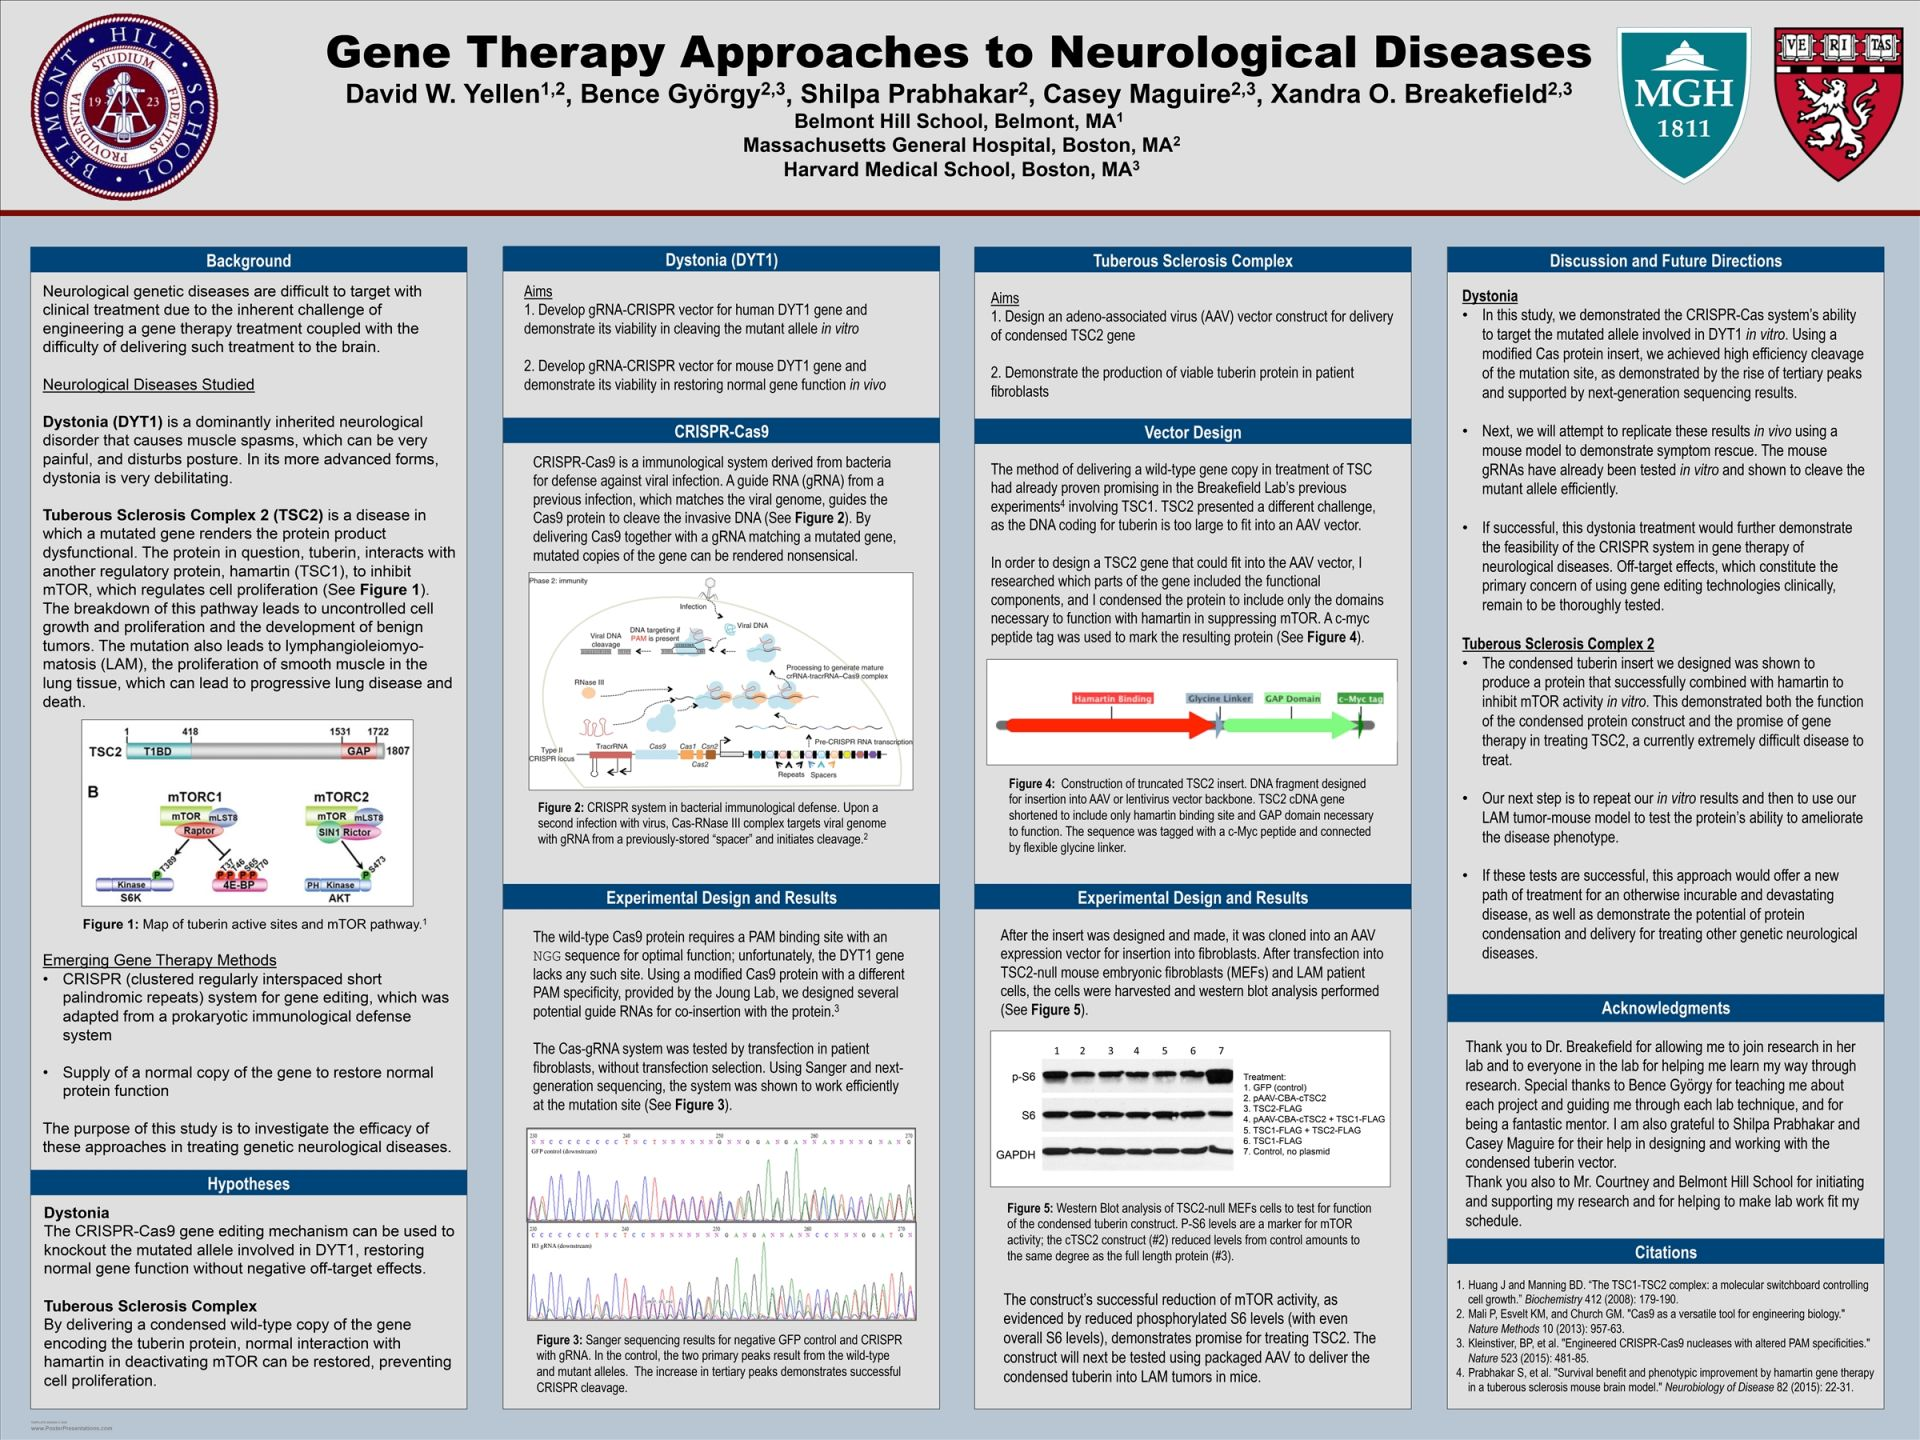 David Yellen-Gene Therapy Approaches to Neurological Diseases